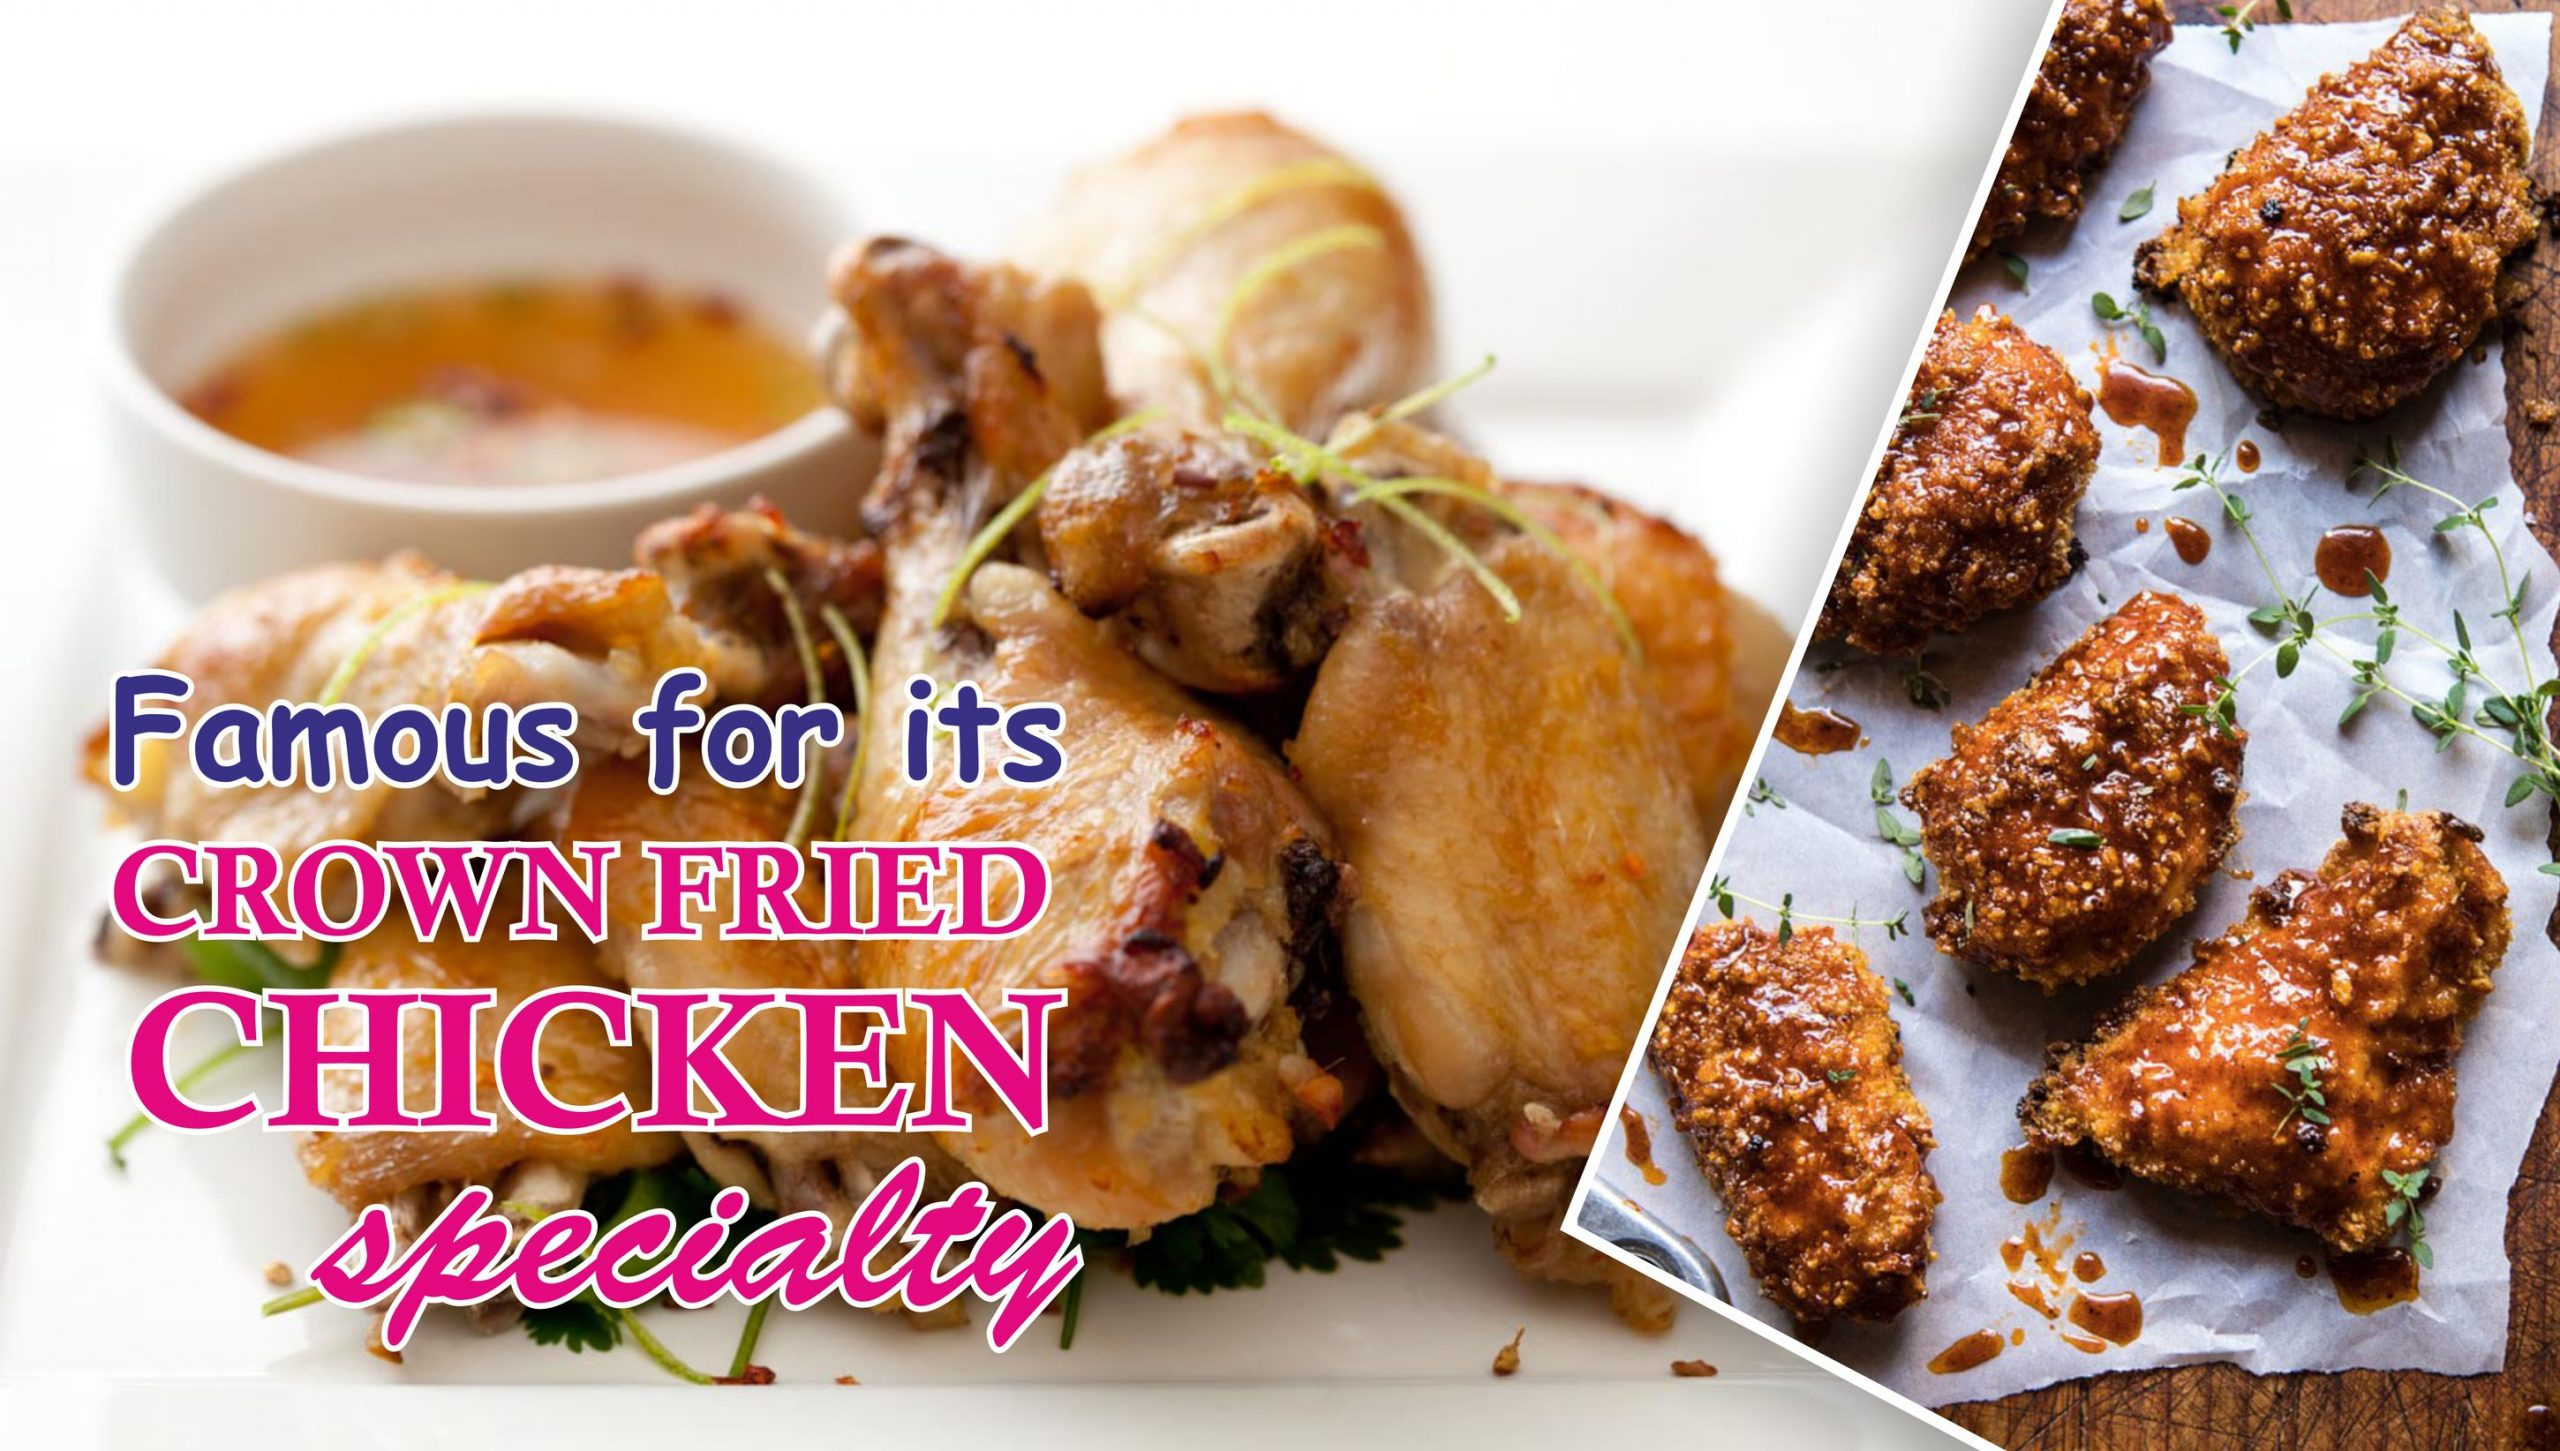 crown fried speciality